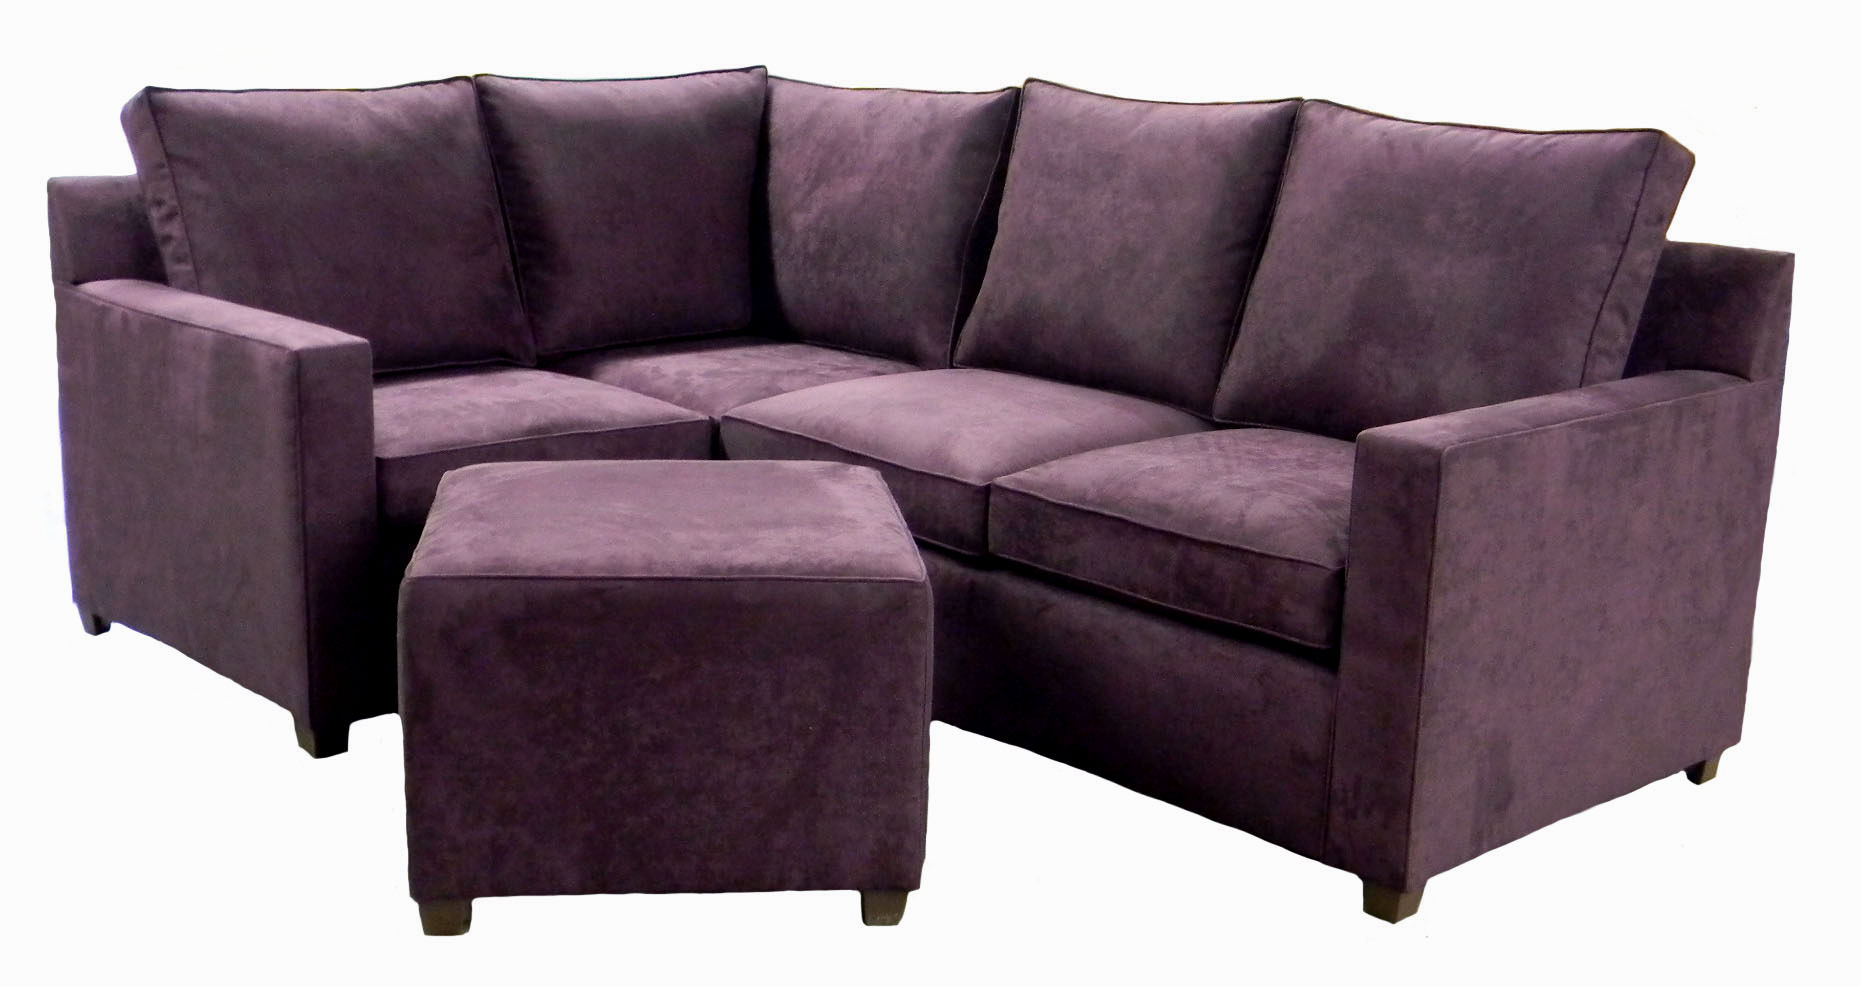 fancy small sectional sofas gallery-Luxury Small Sectional sofas Plan